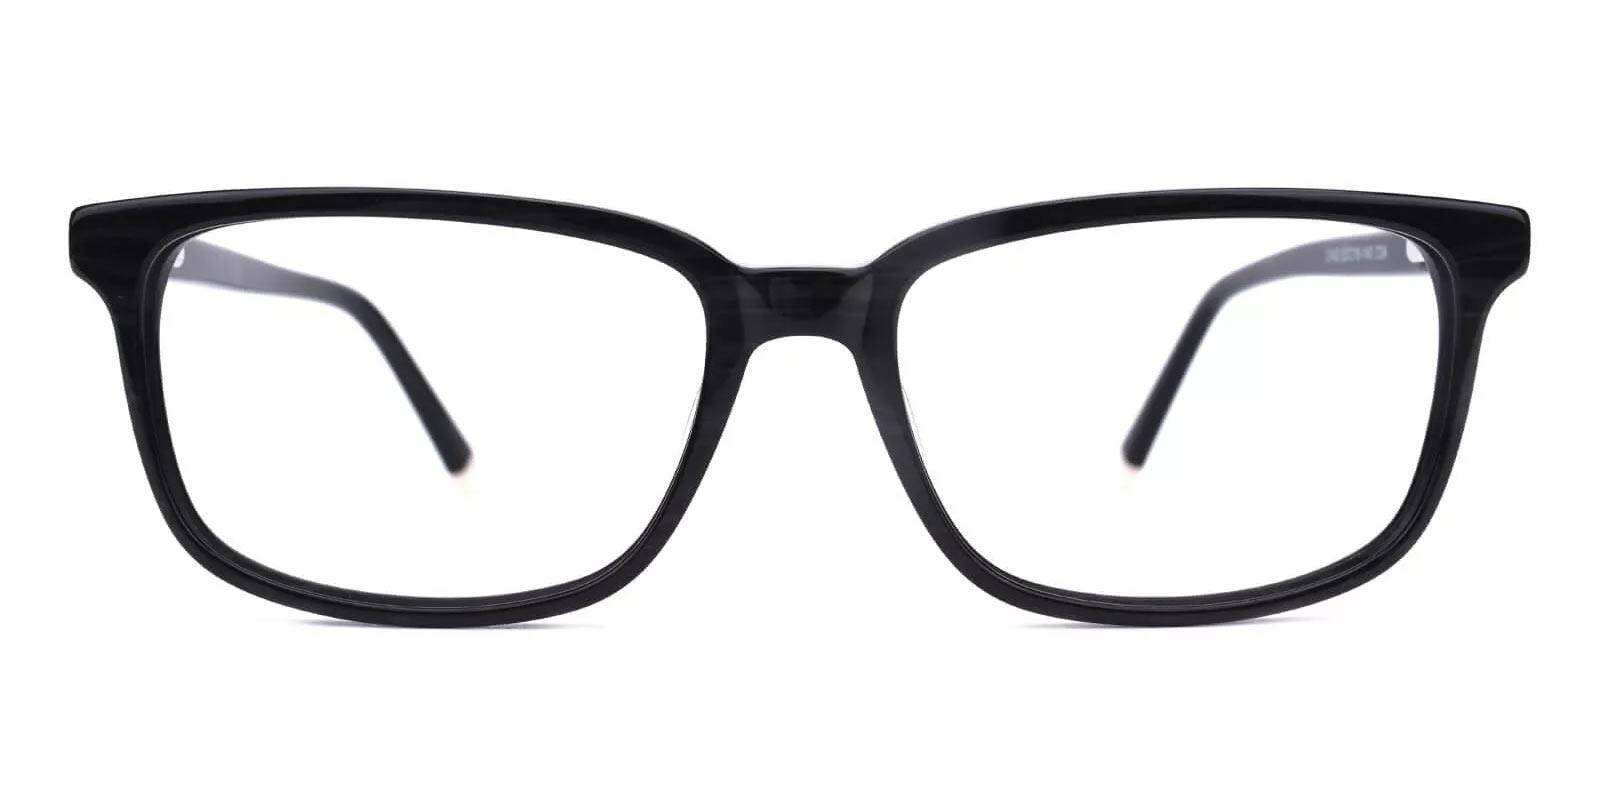 Connotation-Striped-Rectangle-Acetate-Eyeglasses-additional2